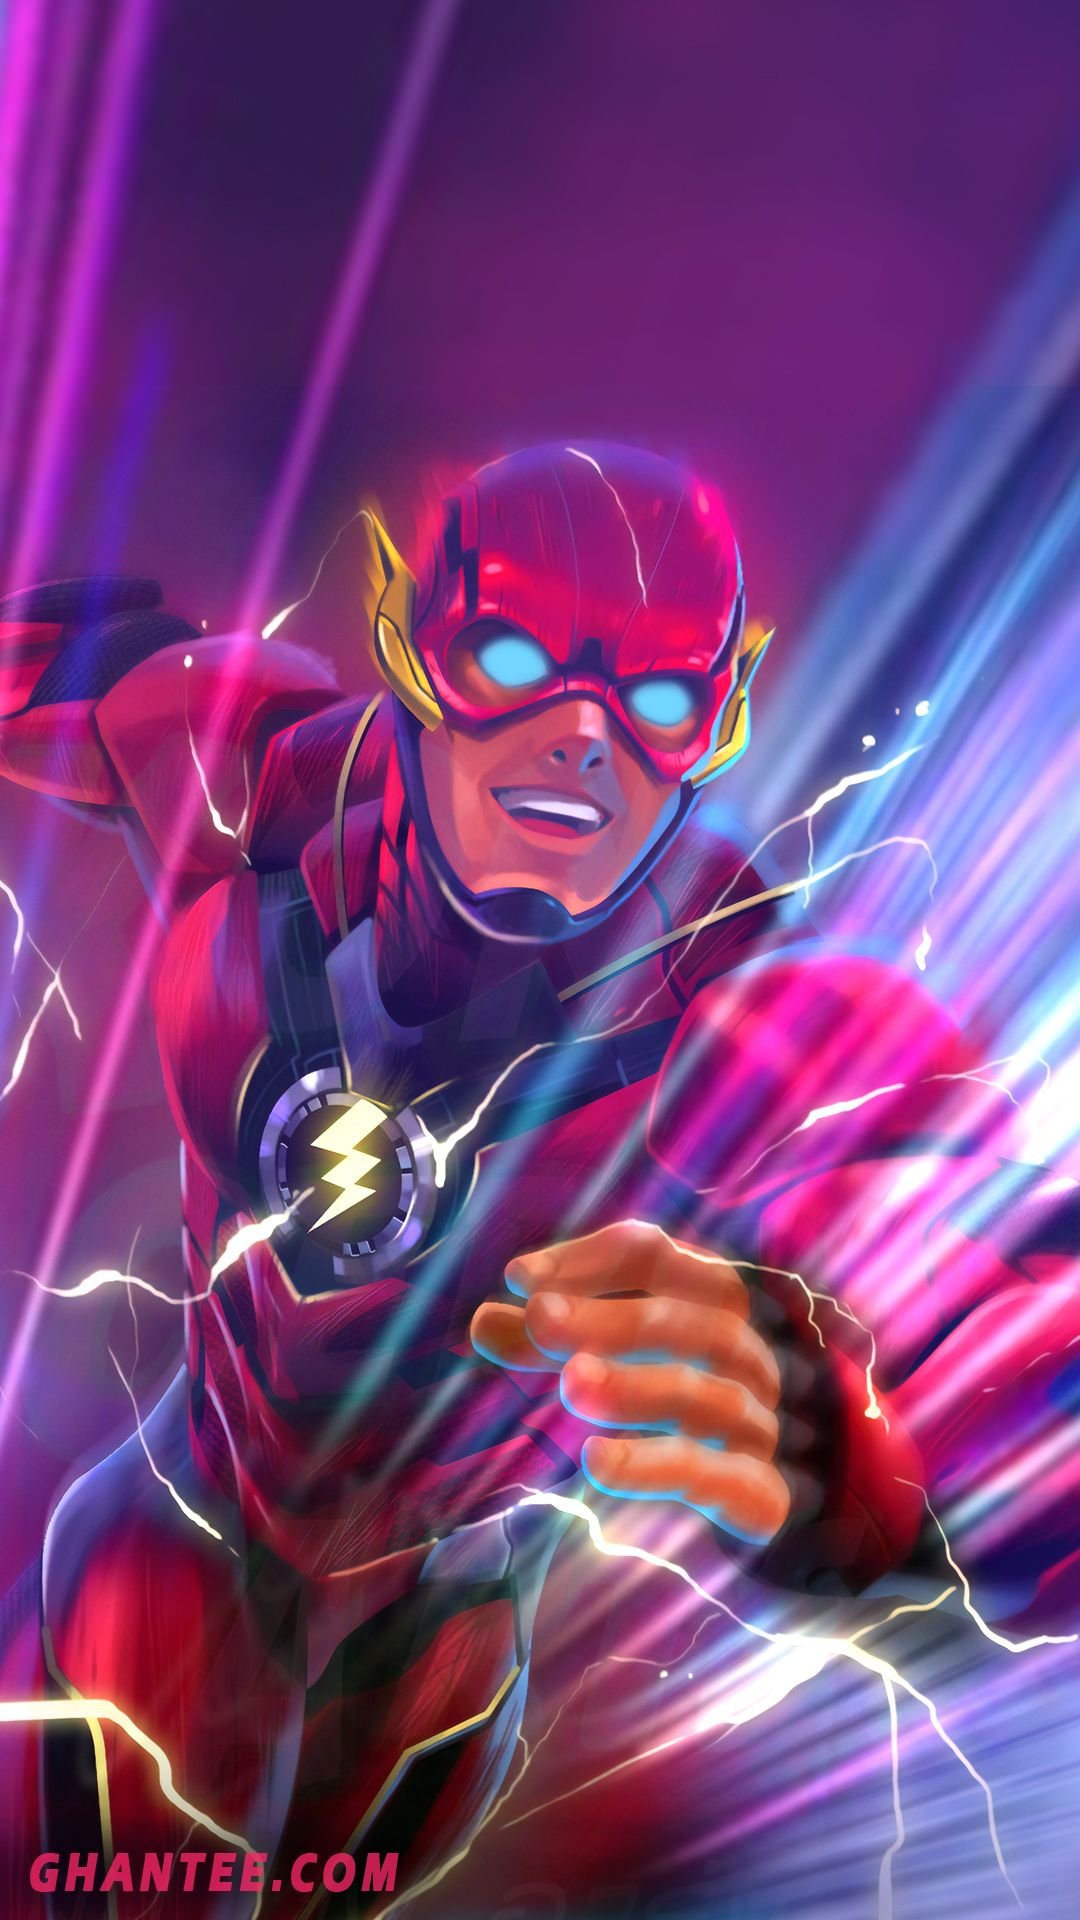 Flash Wallpaper Hd For Android And Iphone 1080p Flash Wallpaper Superhero Wallpaper Flash Flash phone wallpaper hd